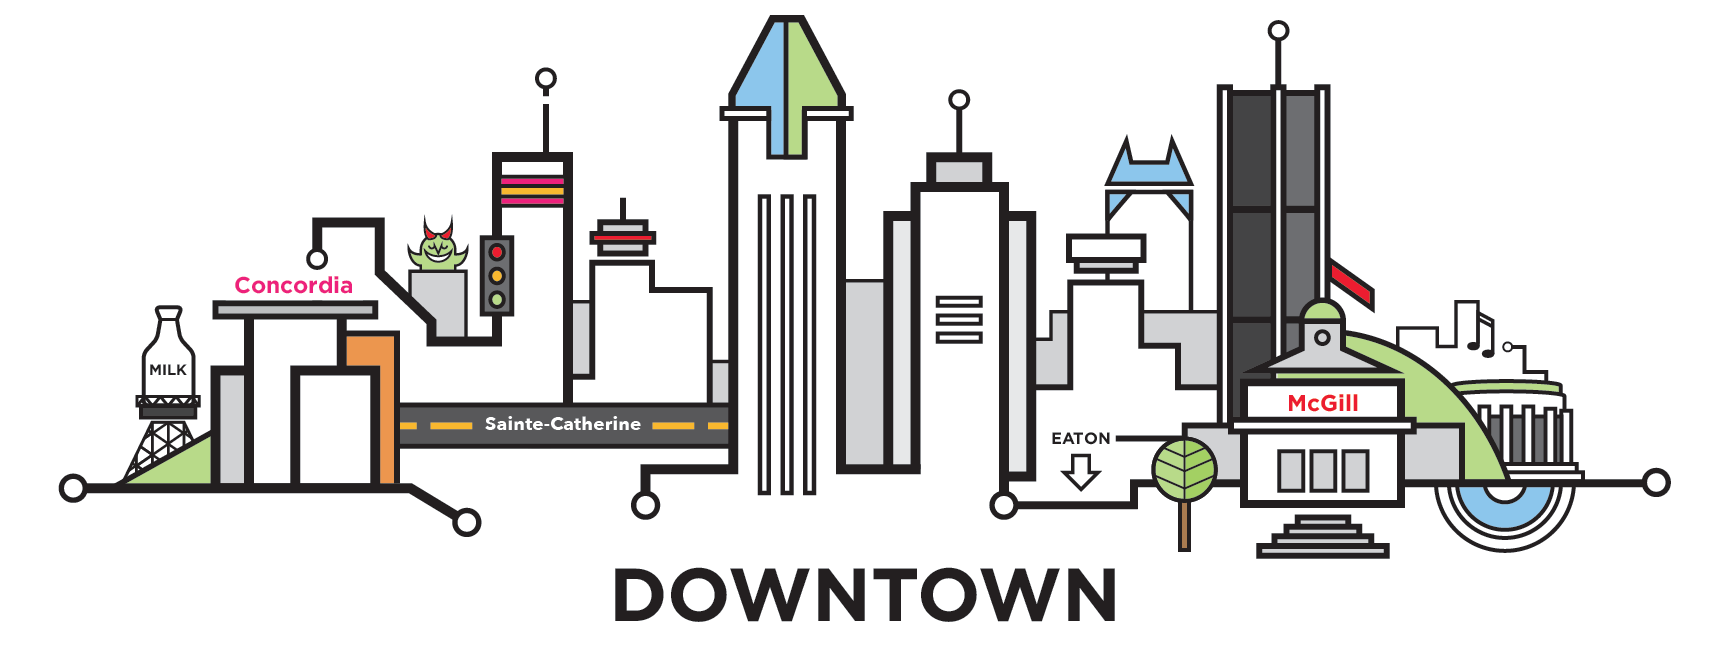 downtown-mtl-cityline-illustration-by-loogart